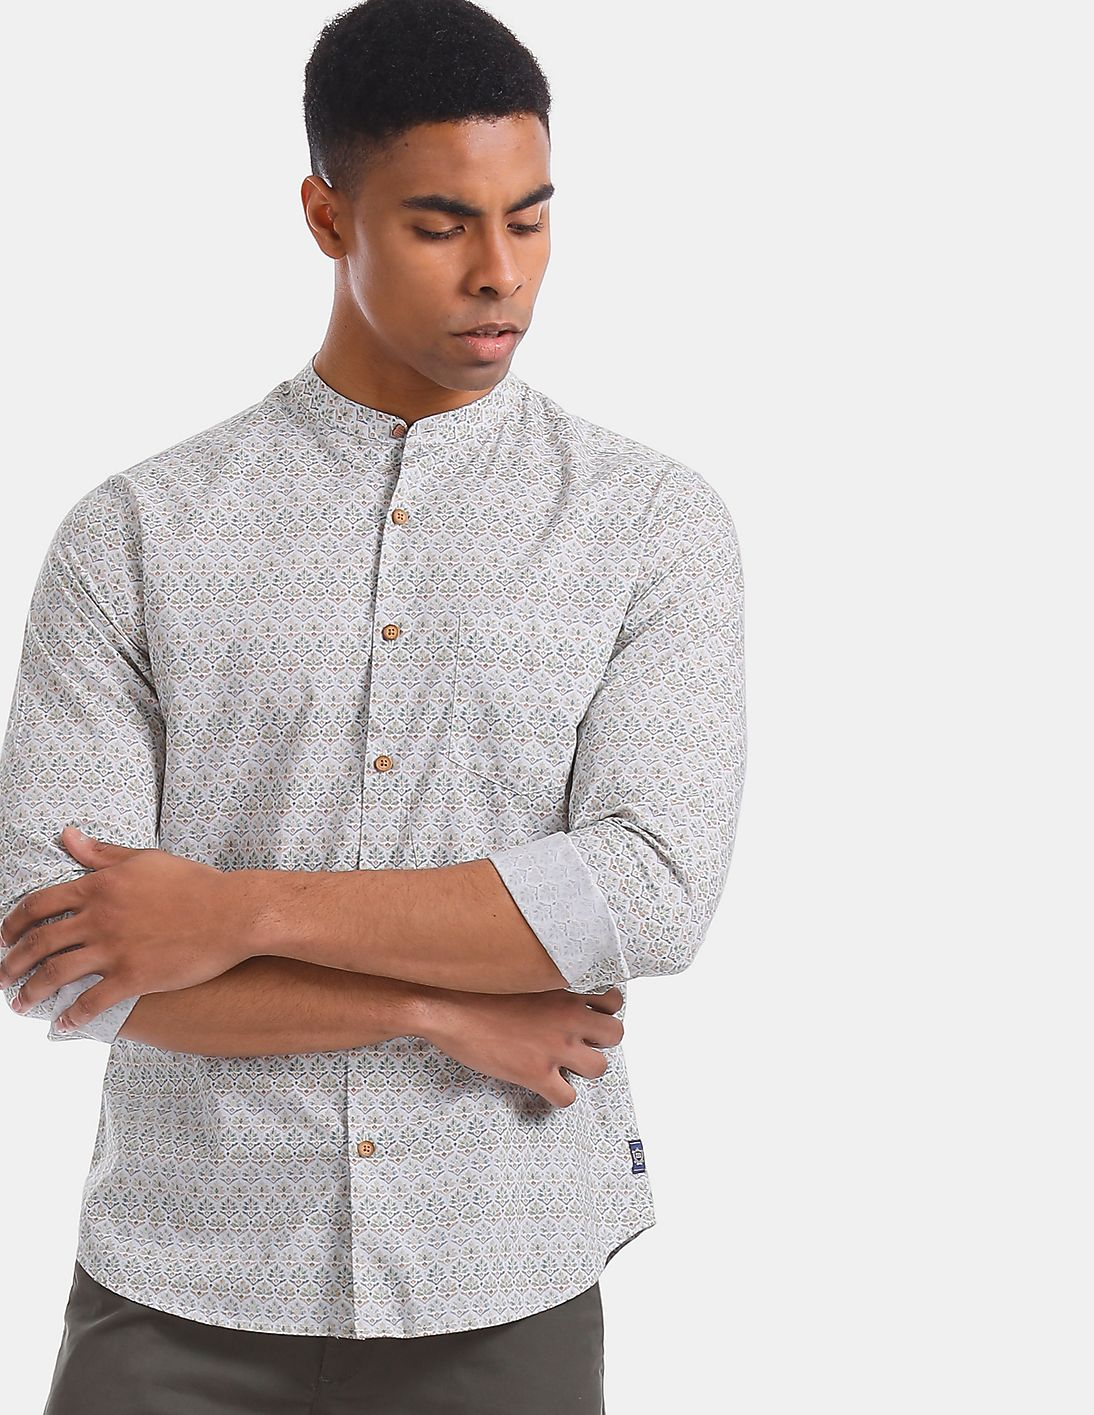 Printed Mandarin Collar Shirt For Mens Wear